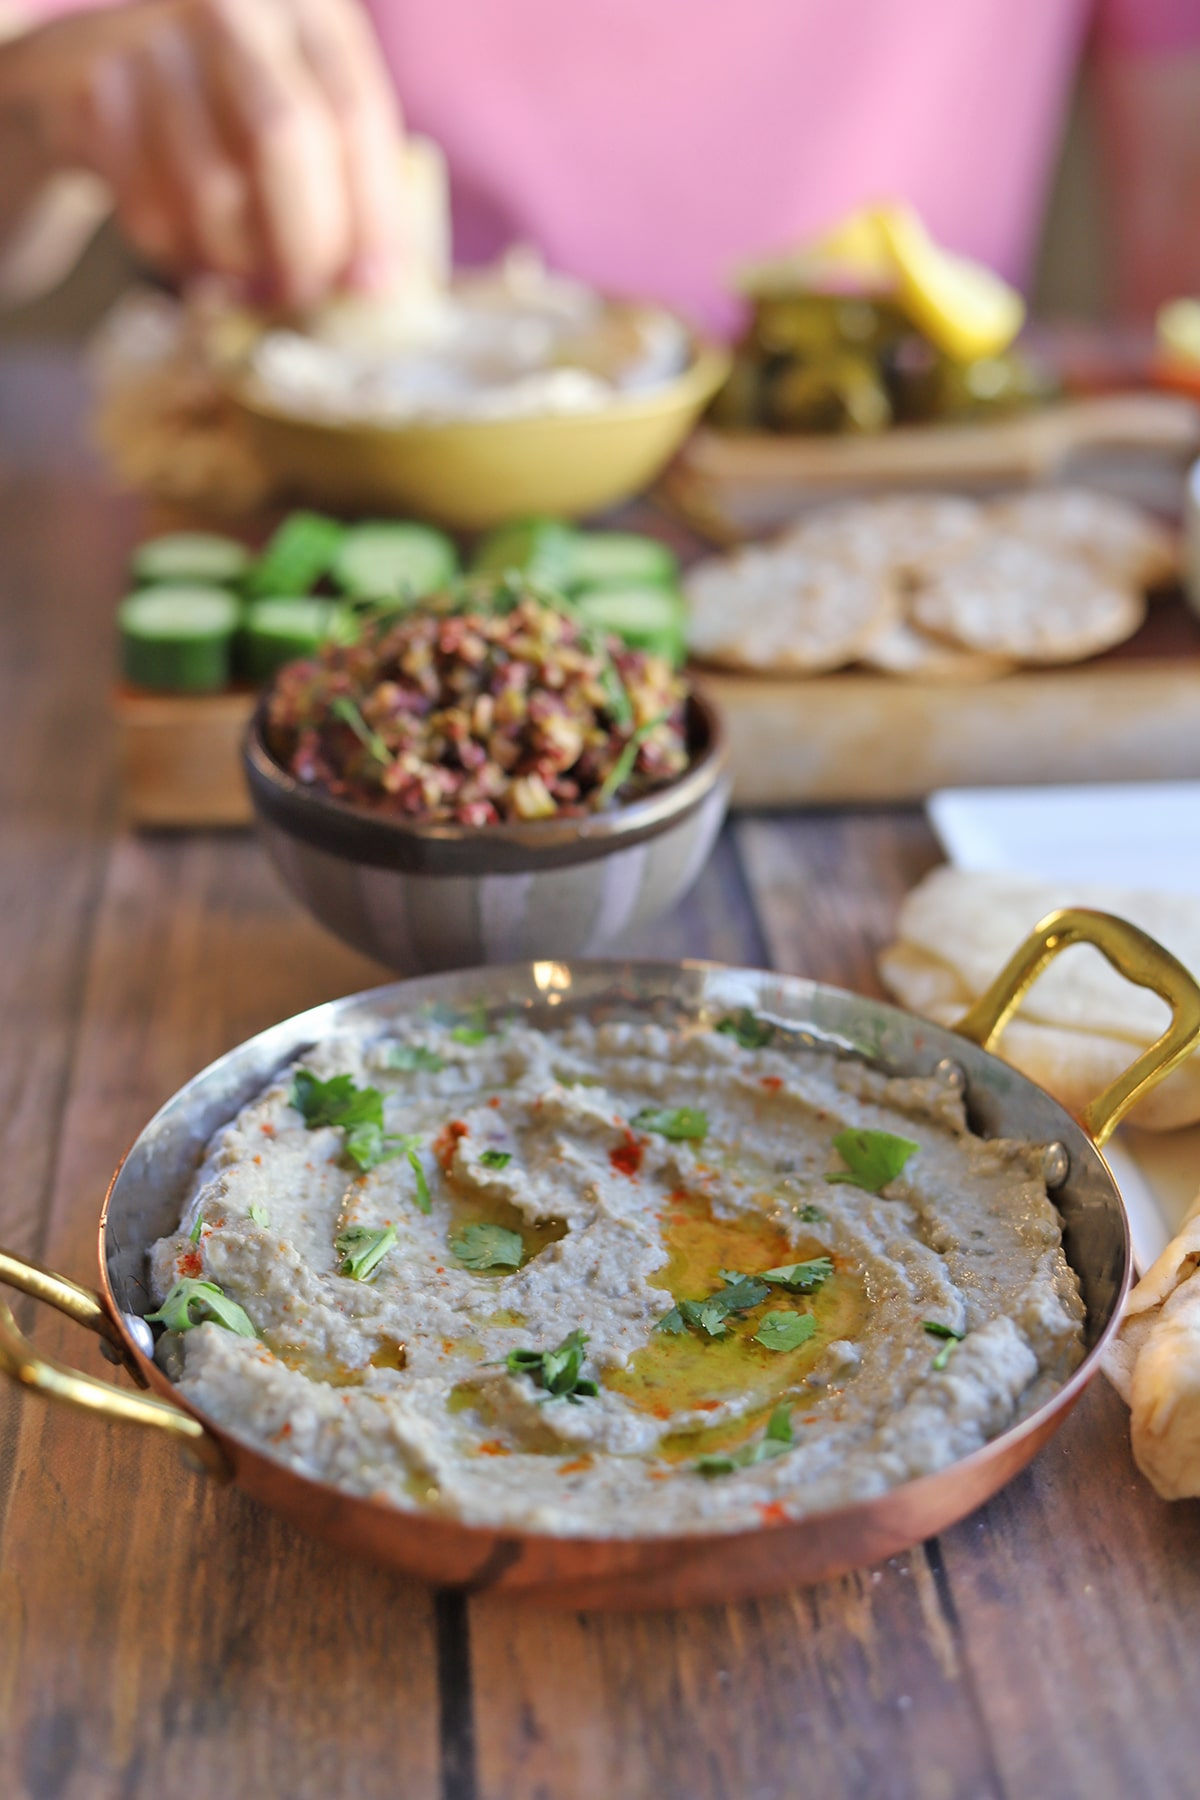 Vegan baba ganoush in gold serving bowl by olive tapenade.